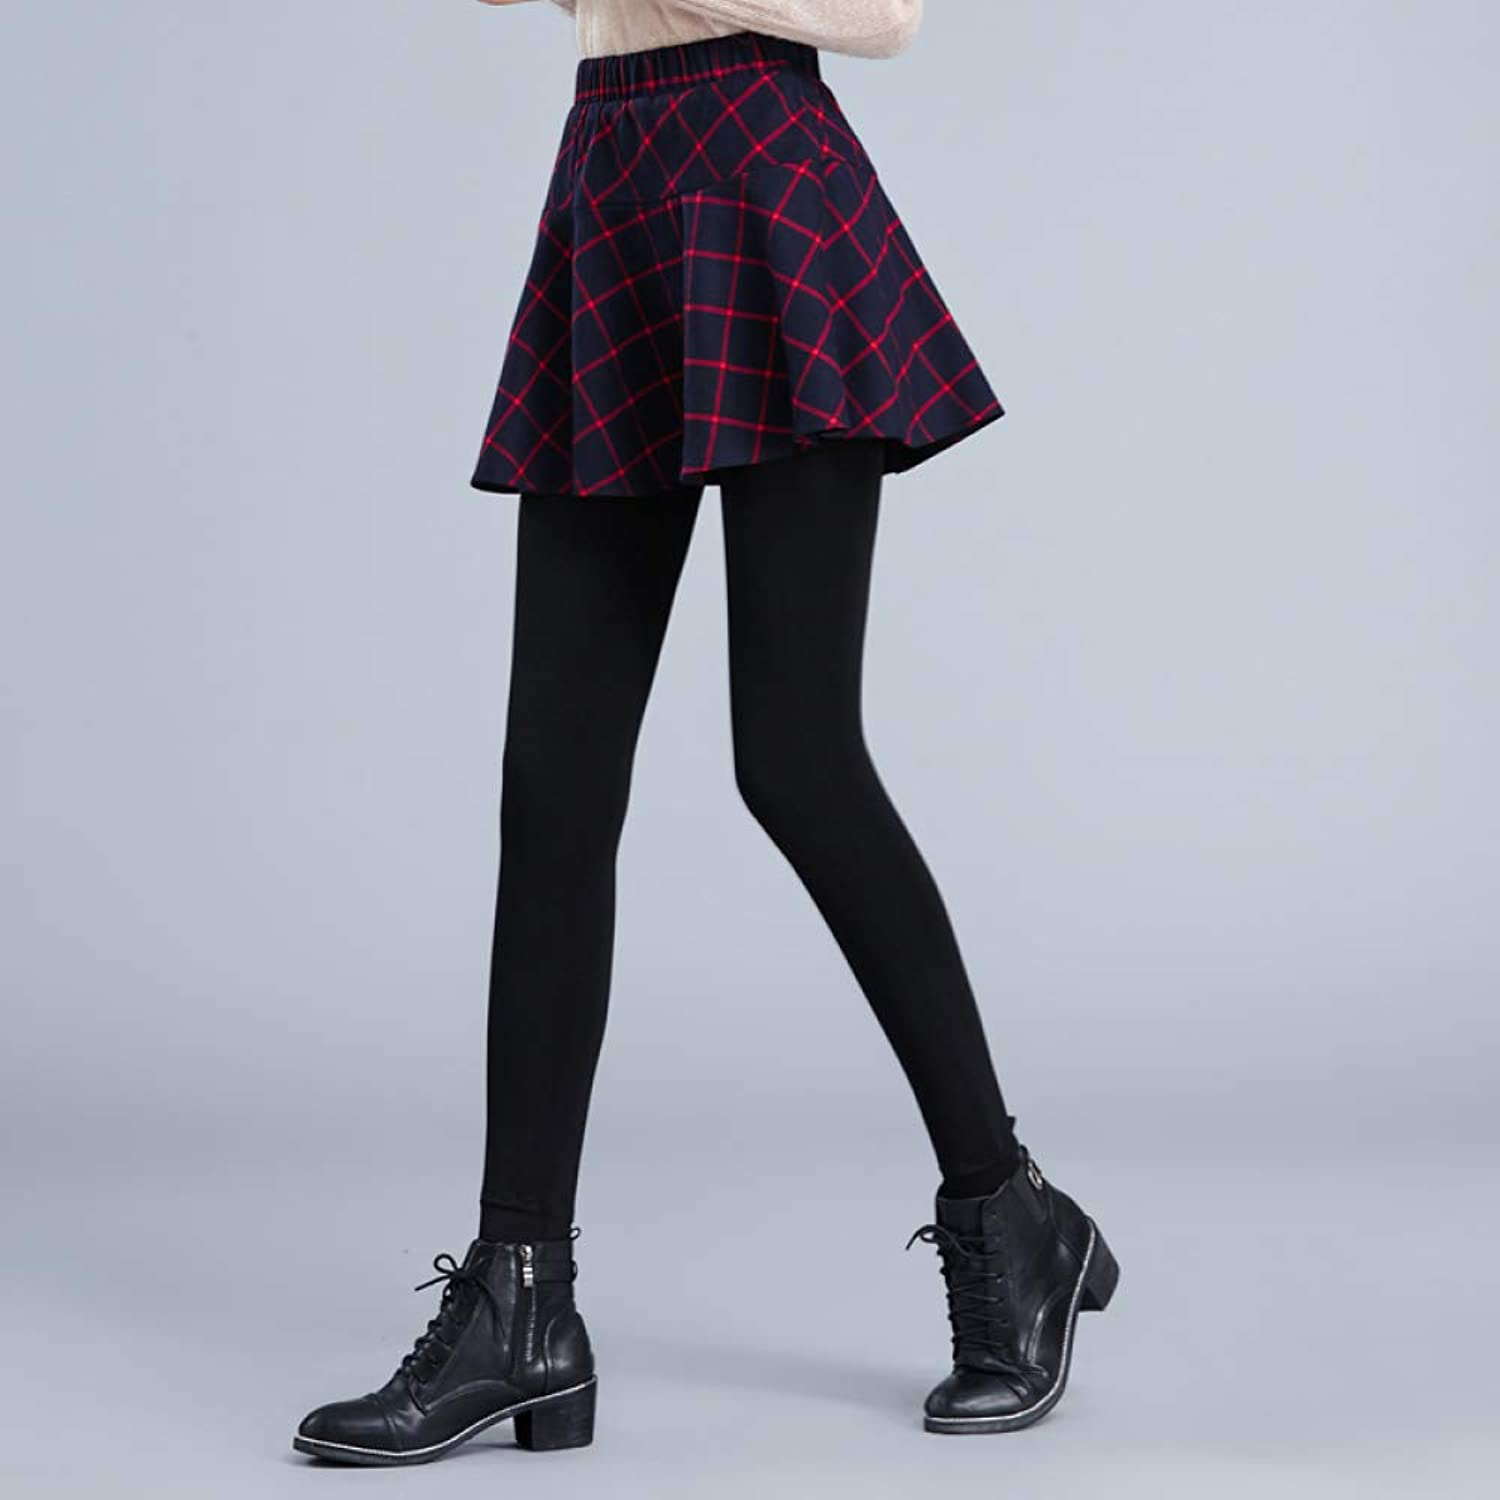 Winter Lady Skirt Two Pieces Leggings Women's Skirts Wear Thin Warm Plus Velvet Thickening Stepping Foot Bag Hip Pants CTO